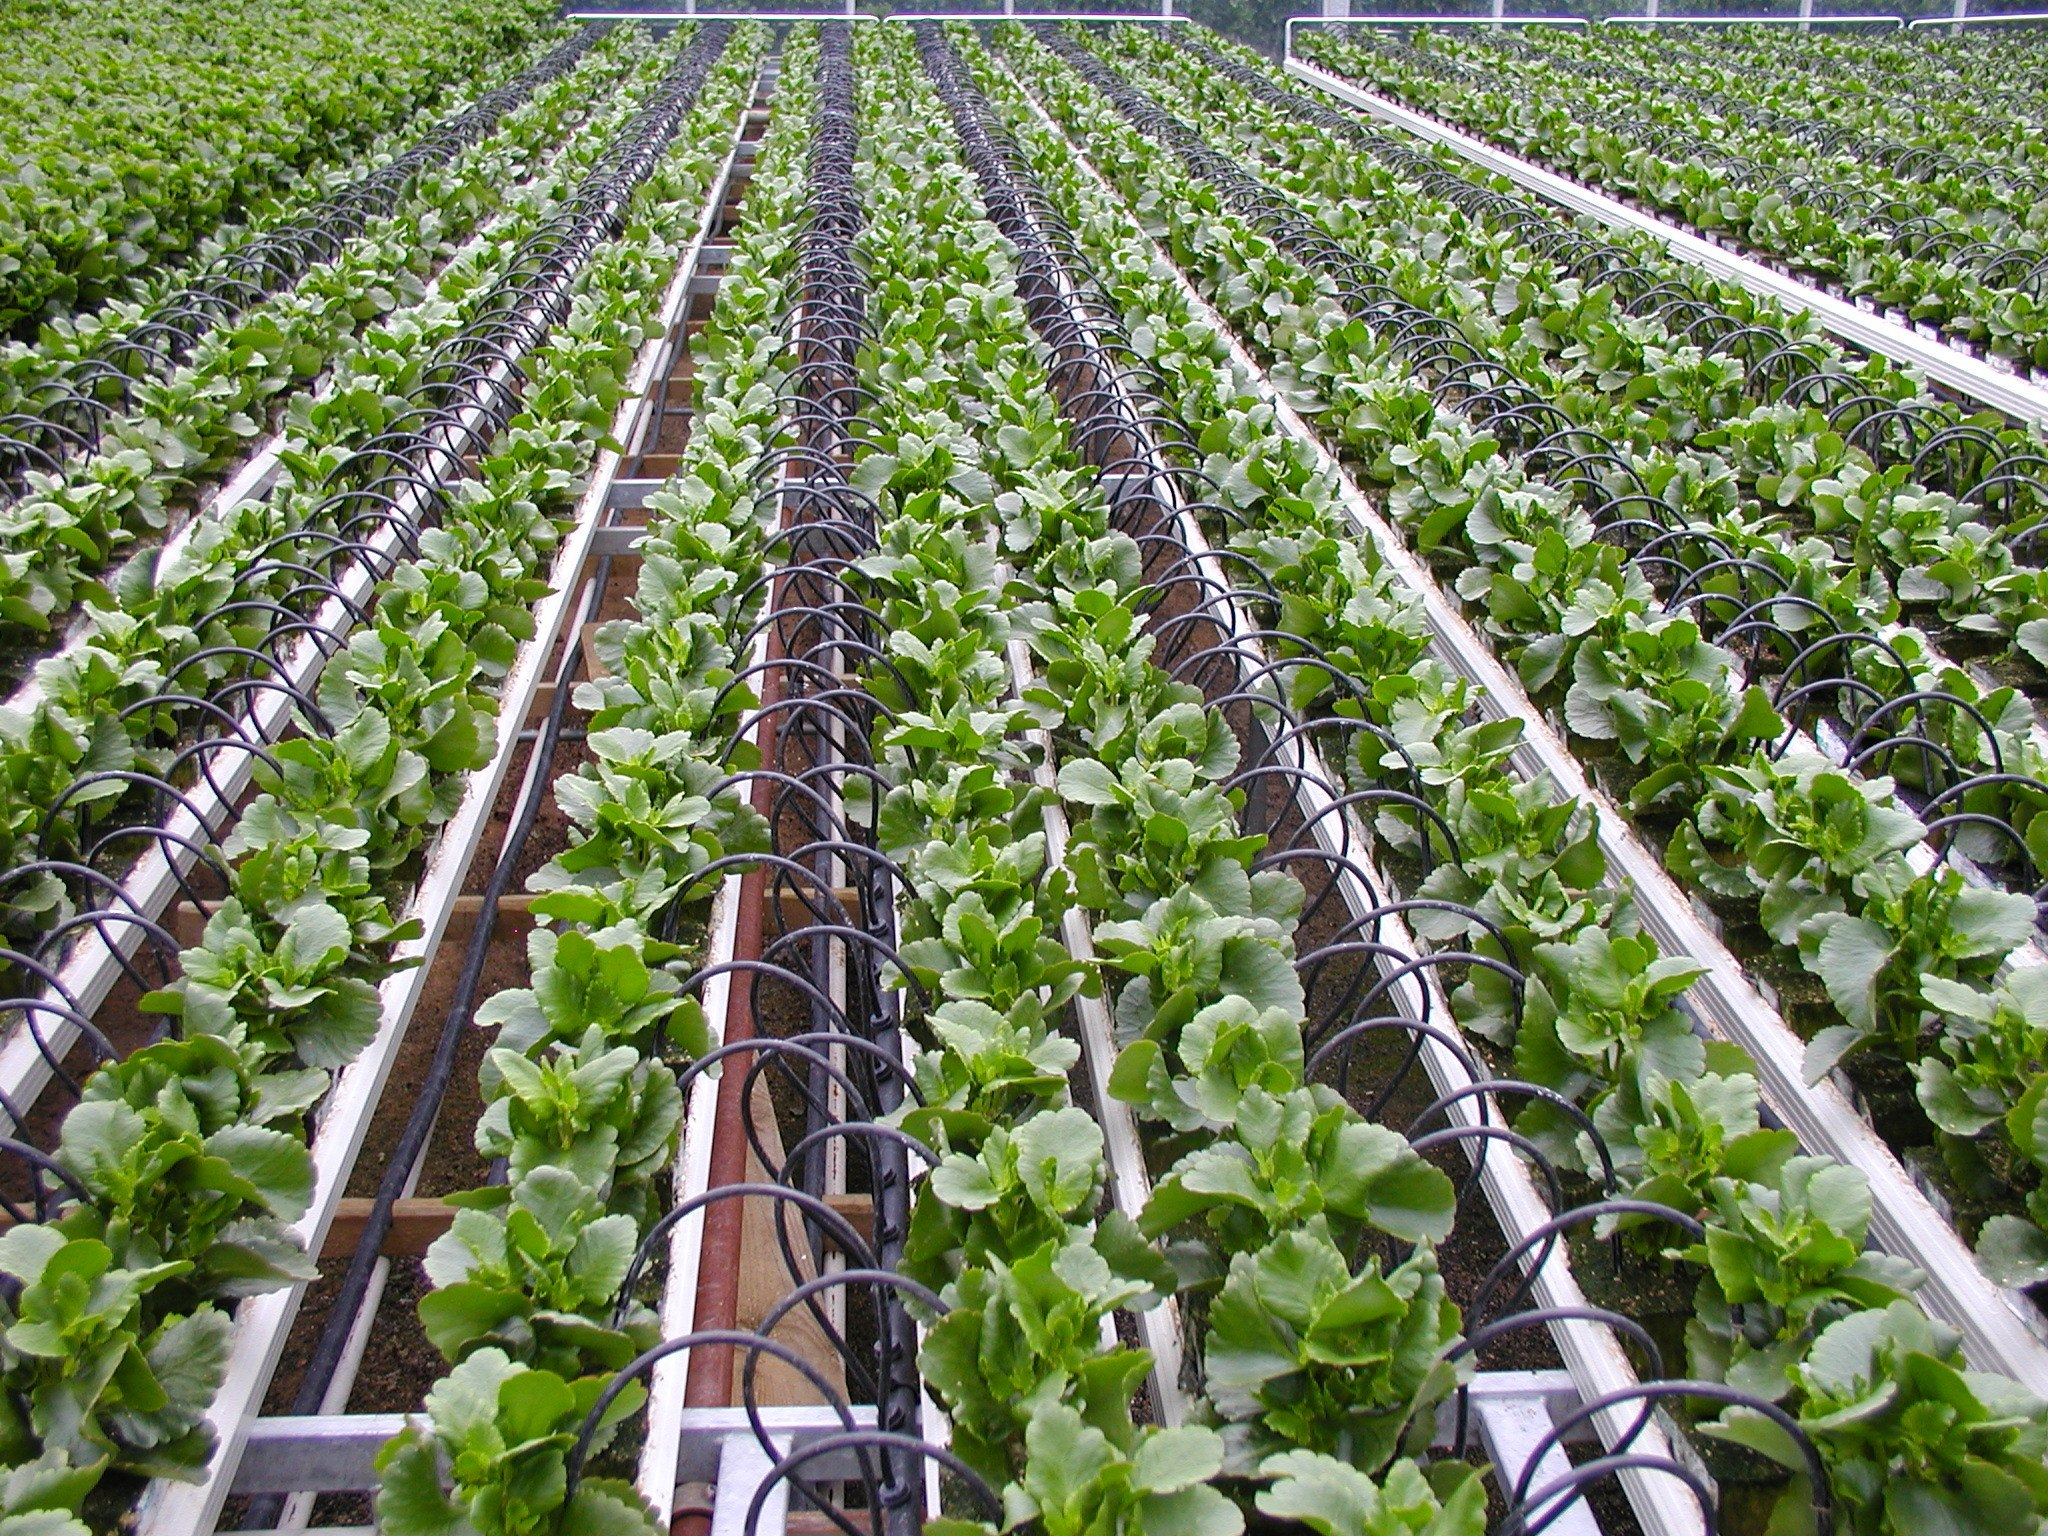 Pot irrigation by On-line drippers of vegetables as an example of Deep Water Culture